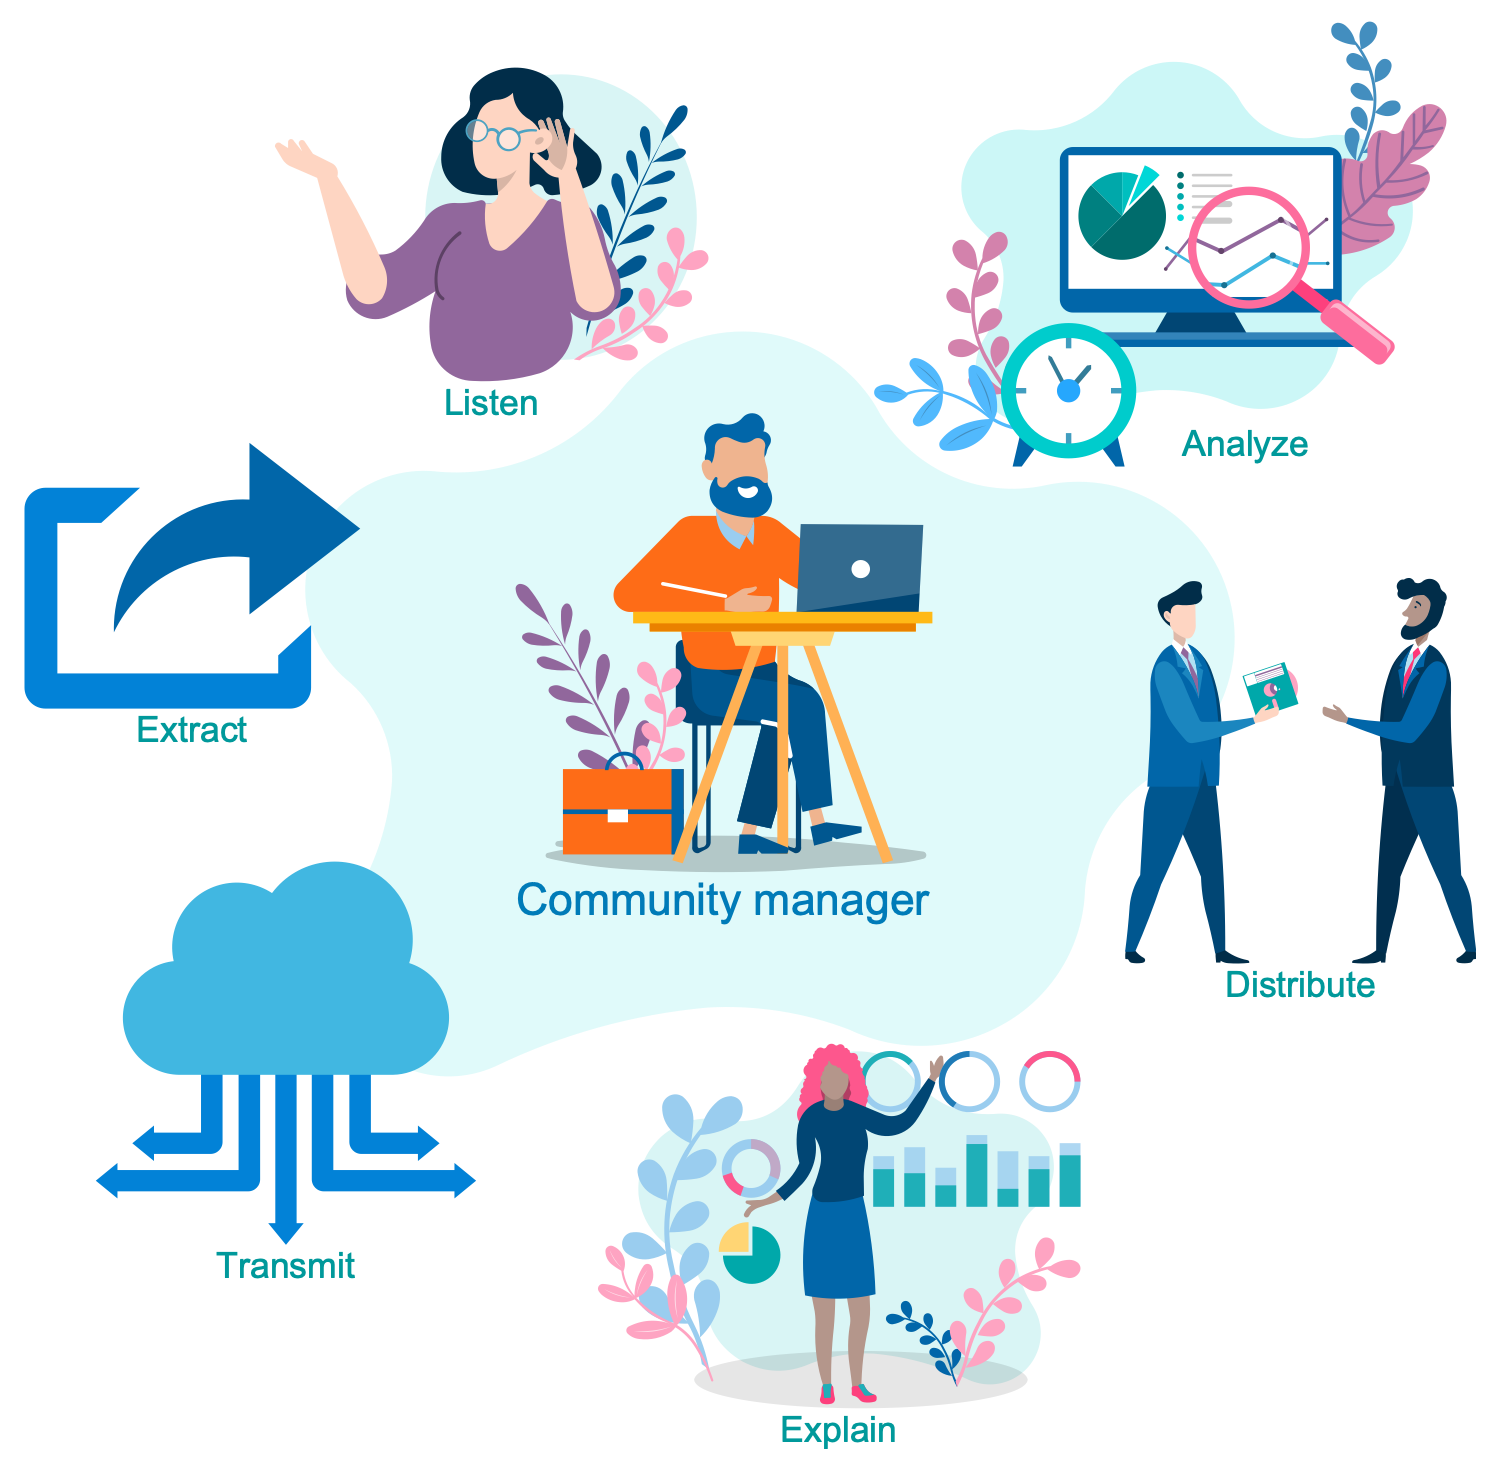 Functions of the Community Manager